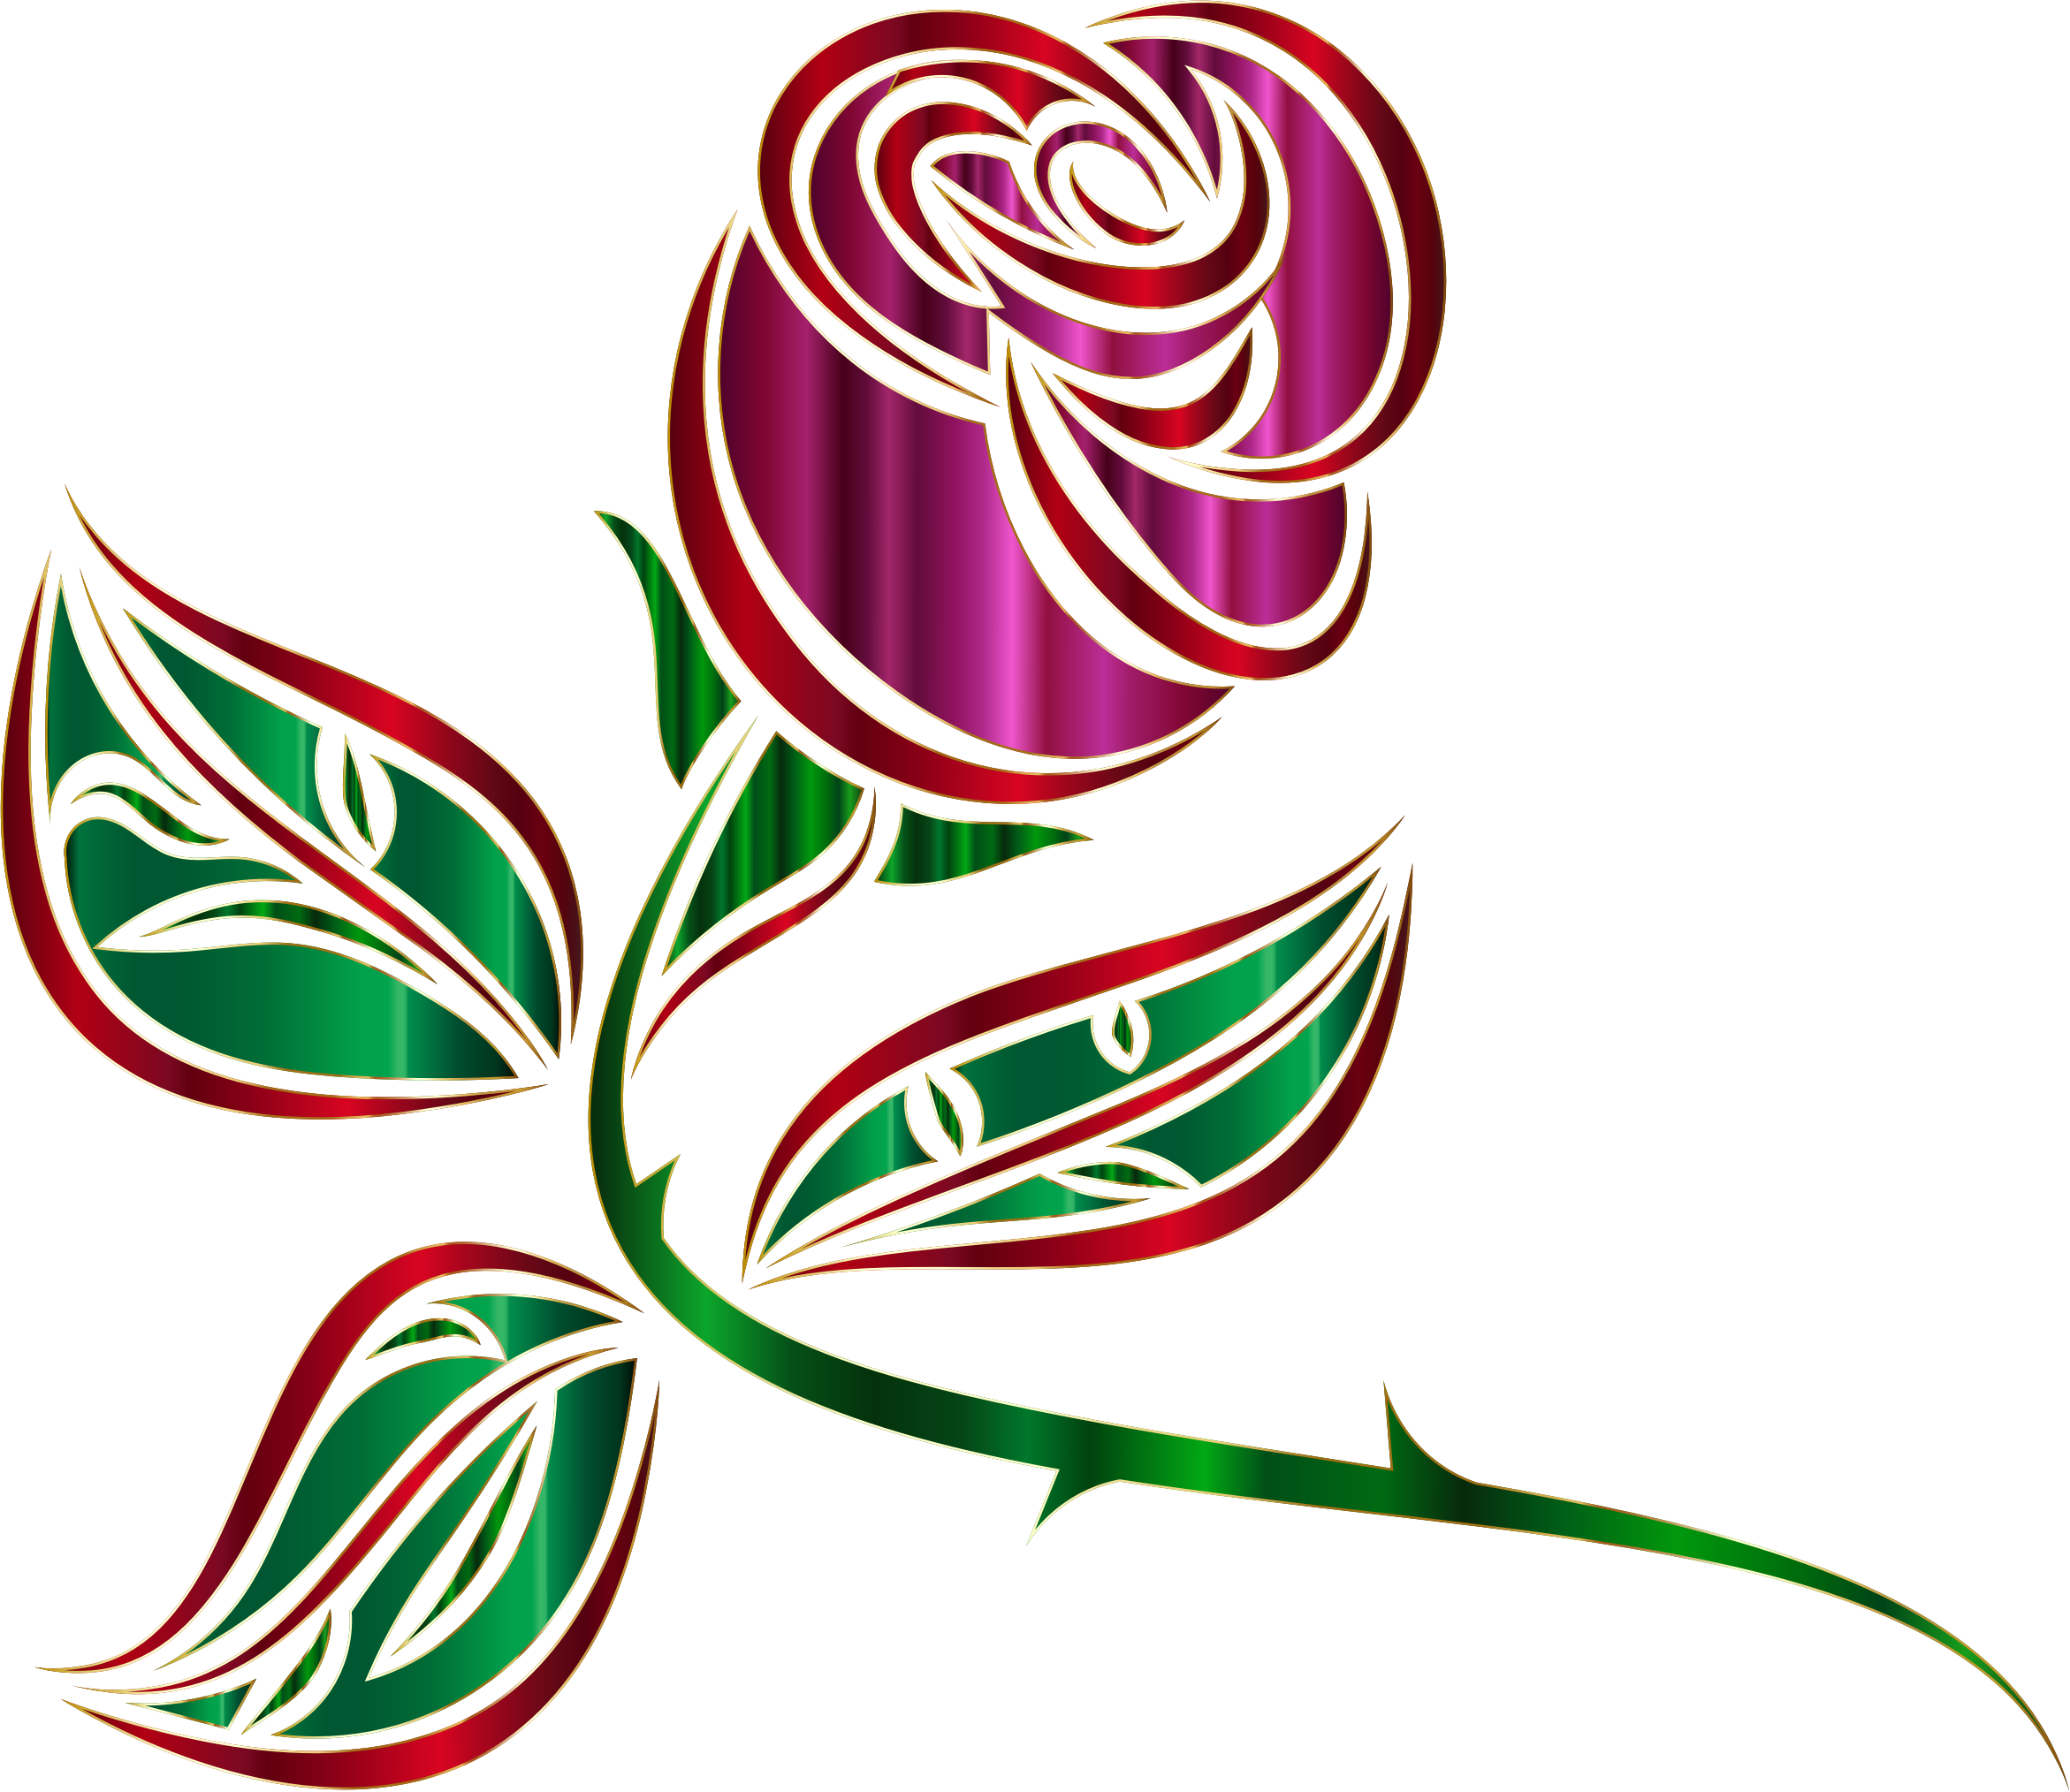 Stylized rose minus background. Extended clipart clipart freeuse library